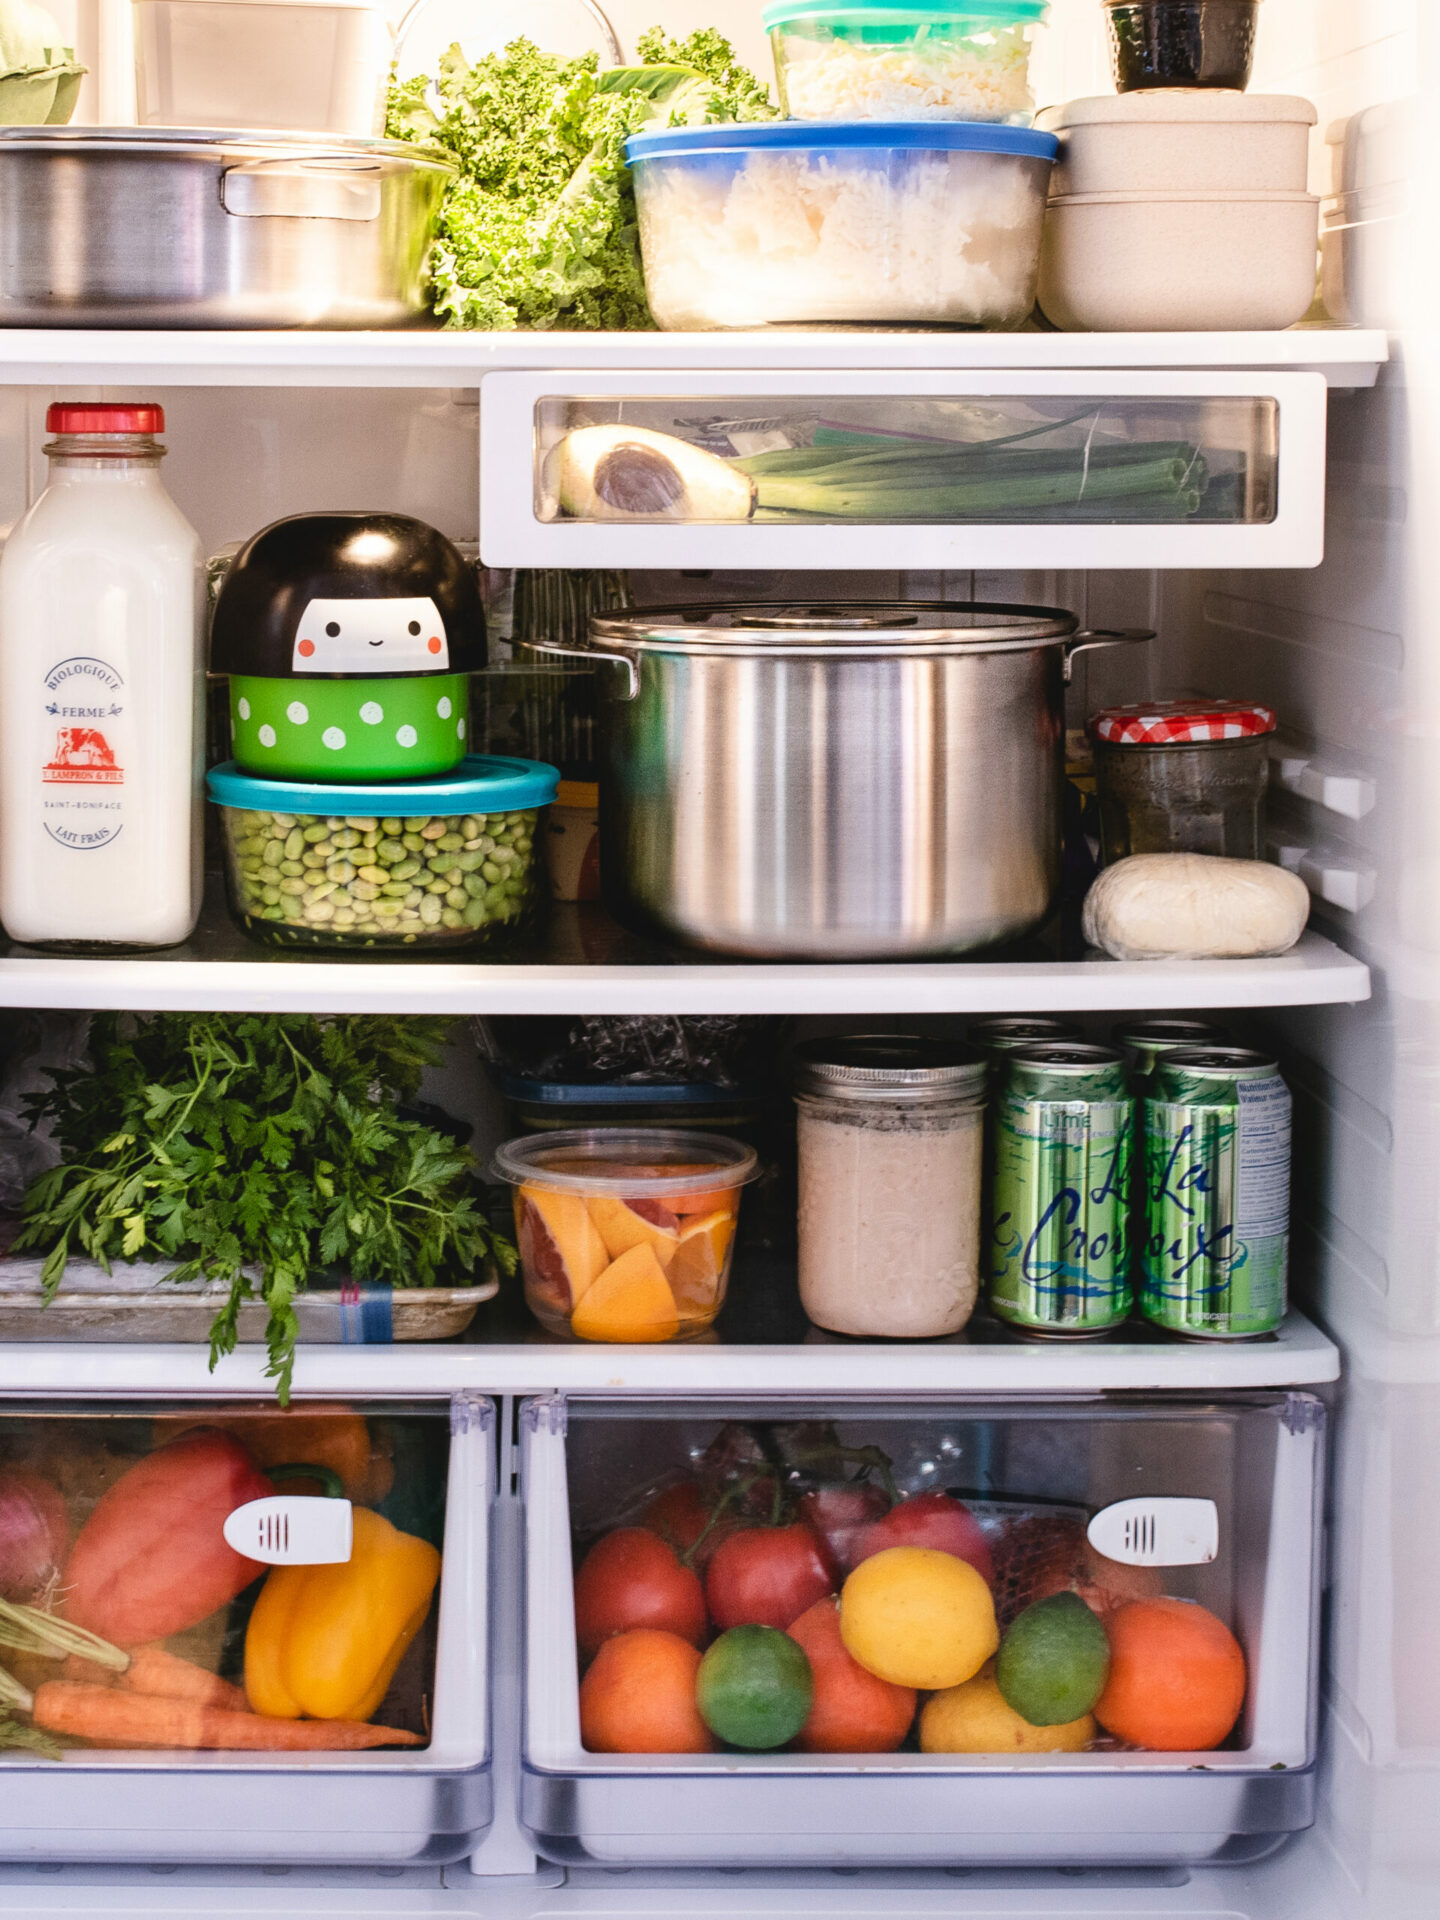 Stainless steel cookware in refrigerator